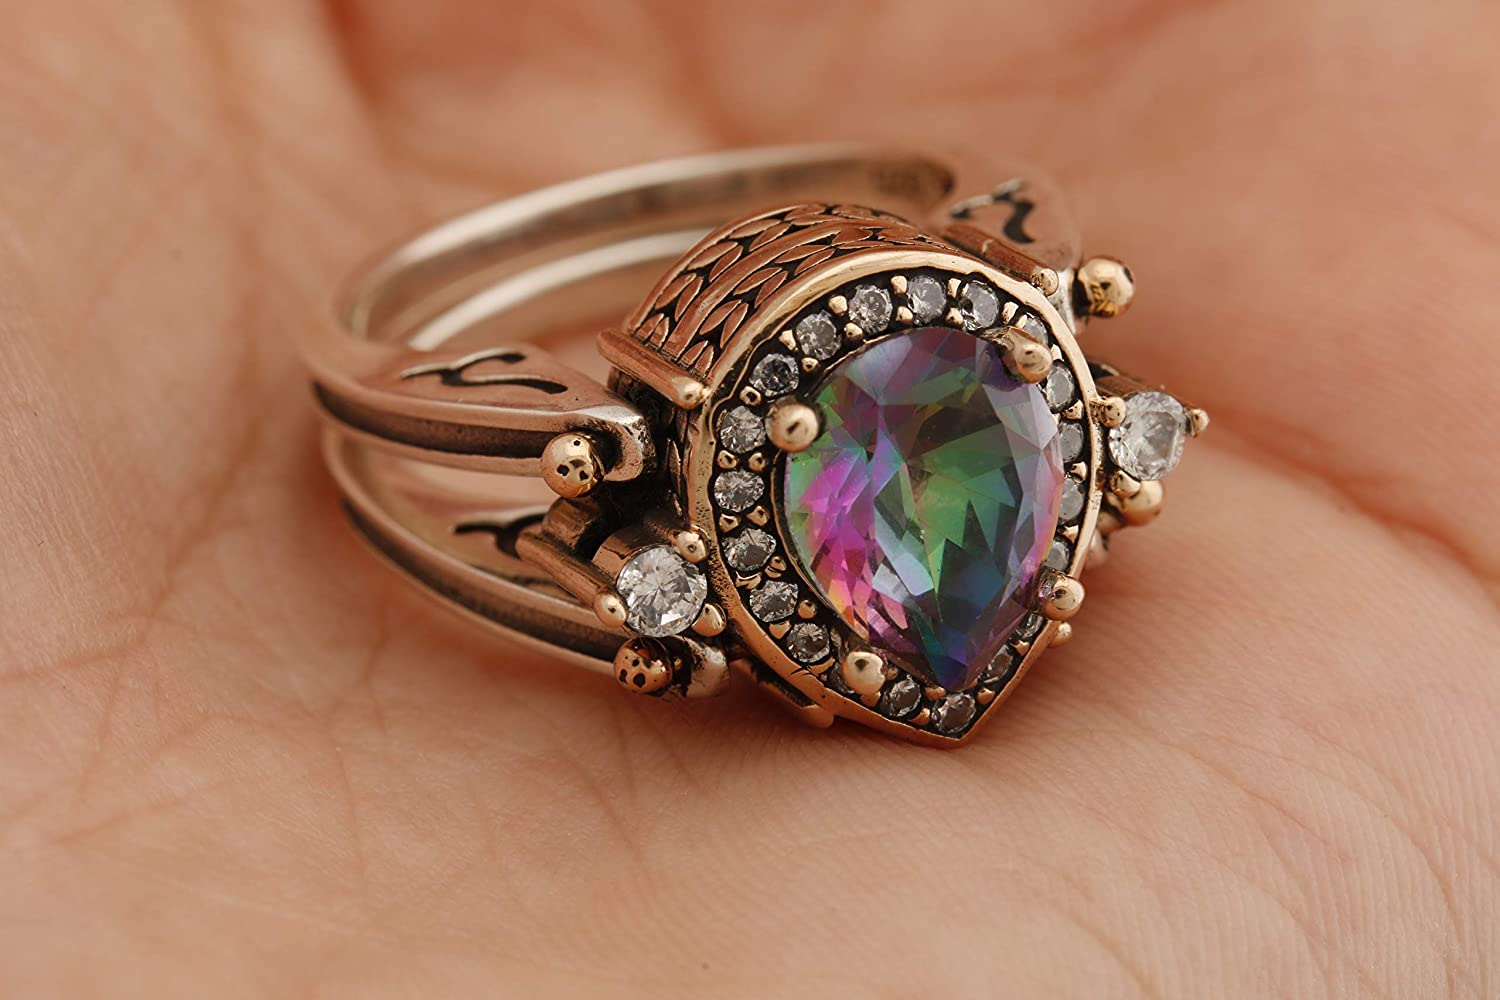 Turkish Jewelry Handmade 2 rings in 1 ring Reversible Drop Shape Pear Cut Shiny Alexandrite and Topaz 925 Sterling Silver Ring Size All